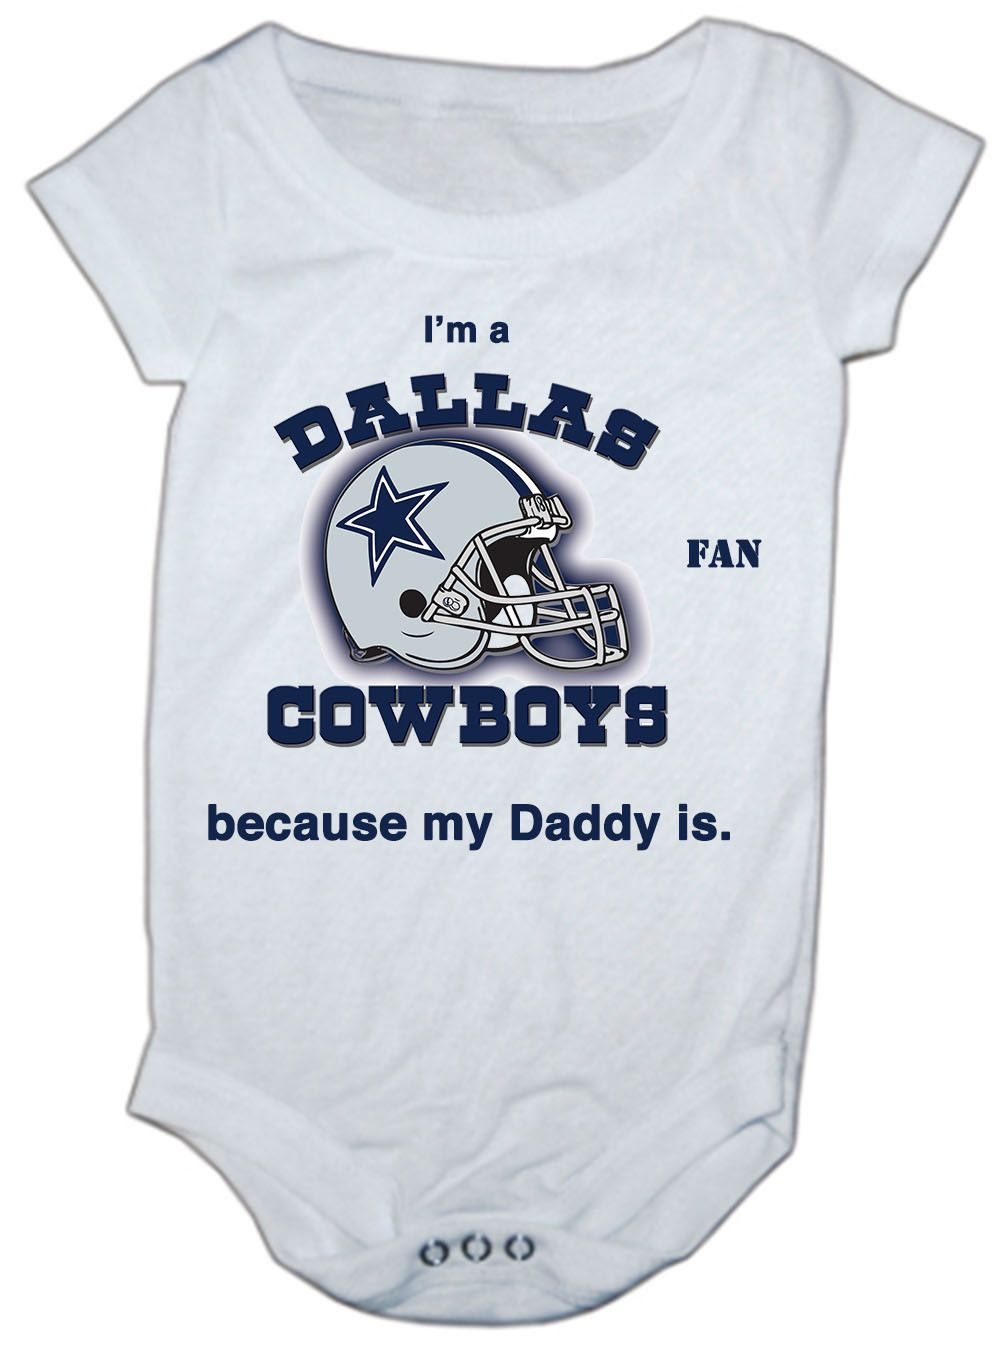 Dallas Cowboys Baby Clothes Beauteous Dallas #cowboys #baby Cowboys #cowboys Creeper #creeper #dallas Review